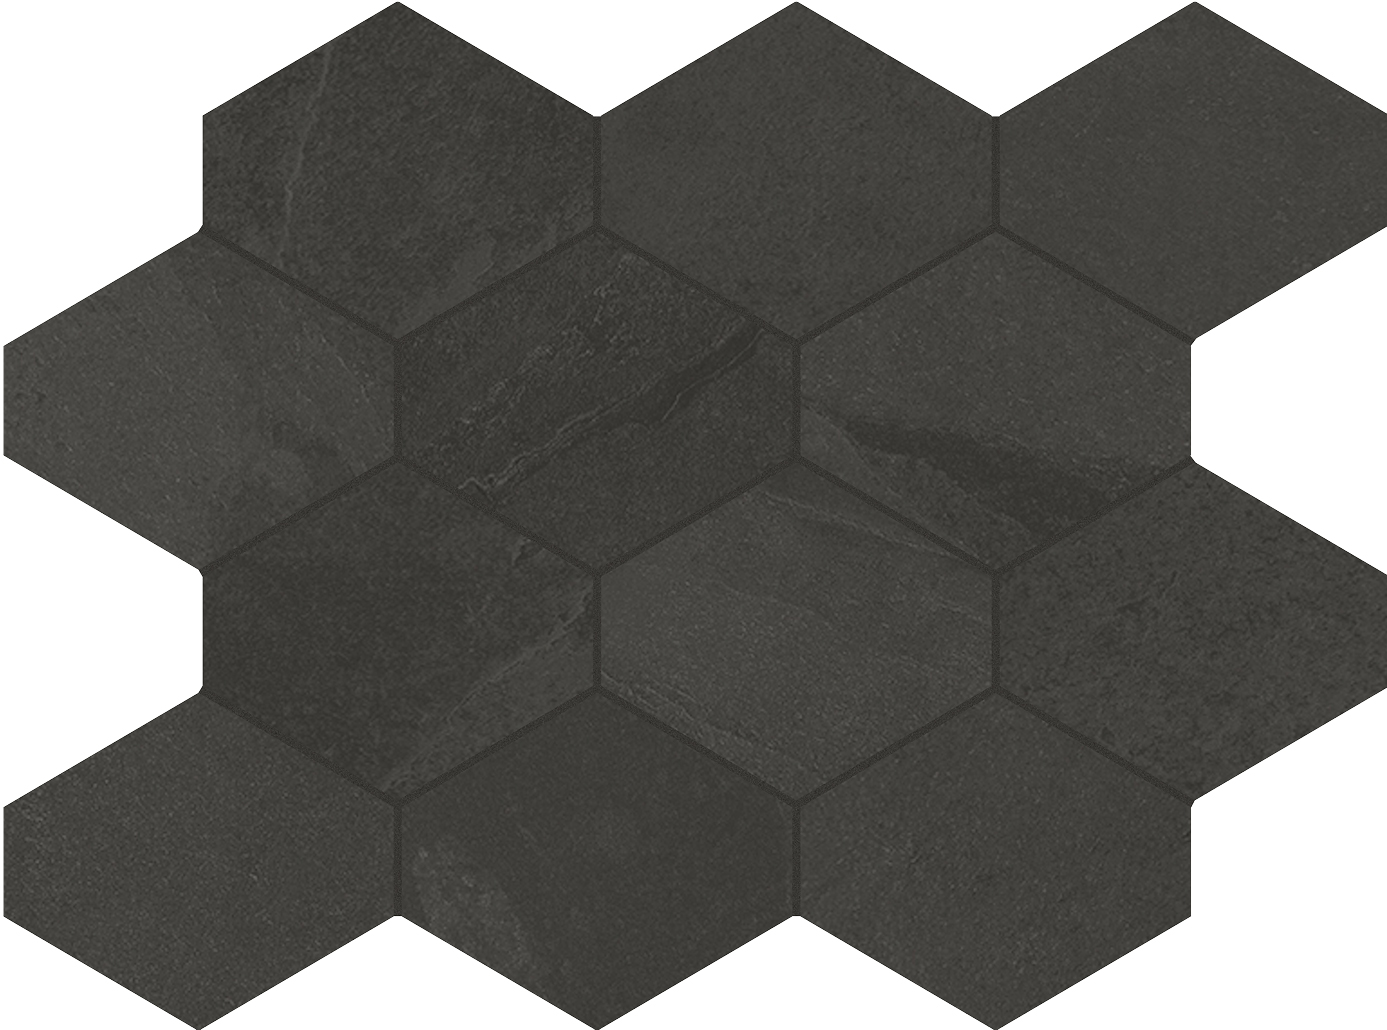 4 x 4 Brazilian Slate Rail Black Rectified Porcelain hexagon